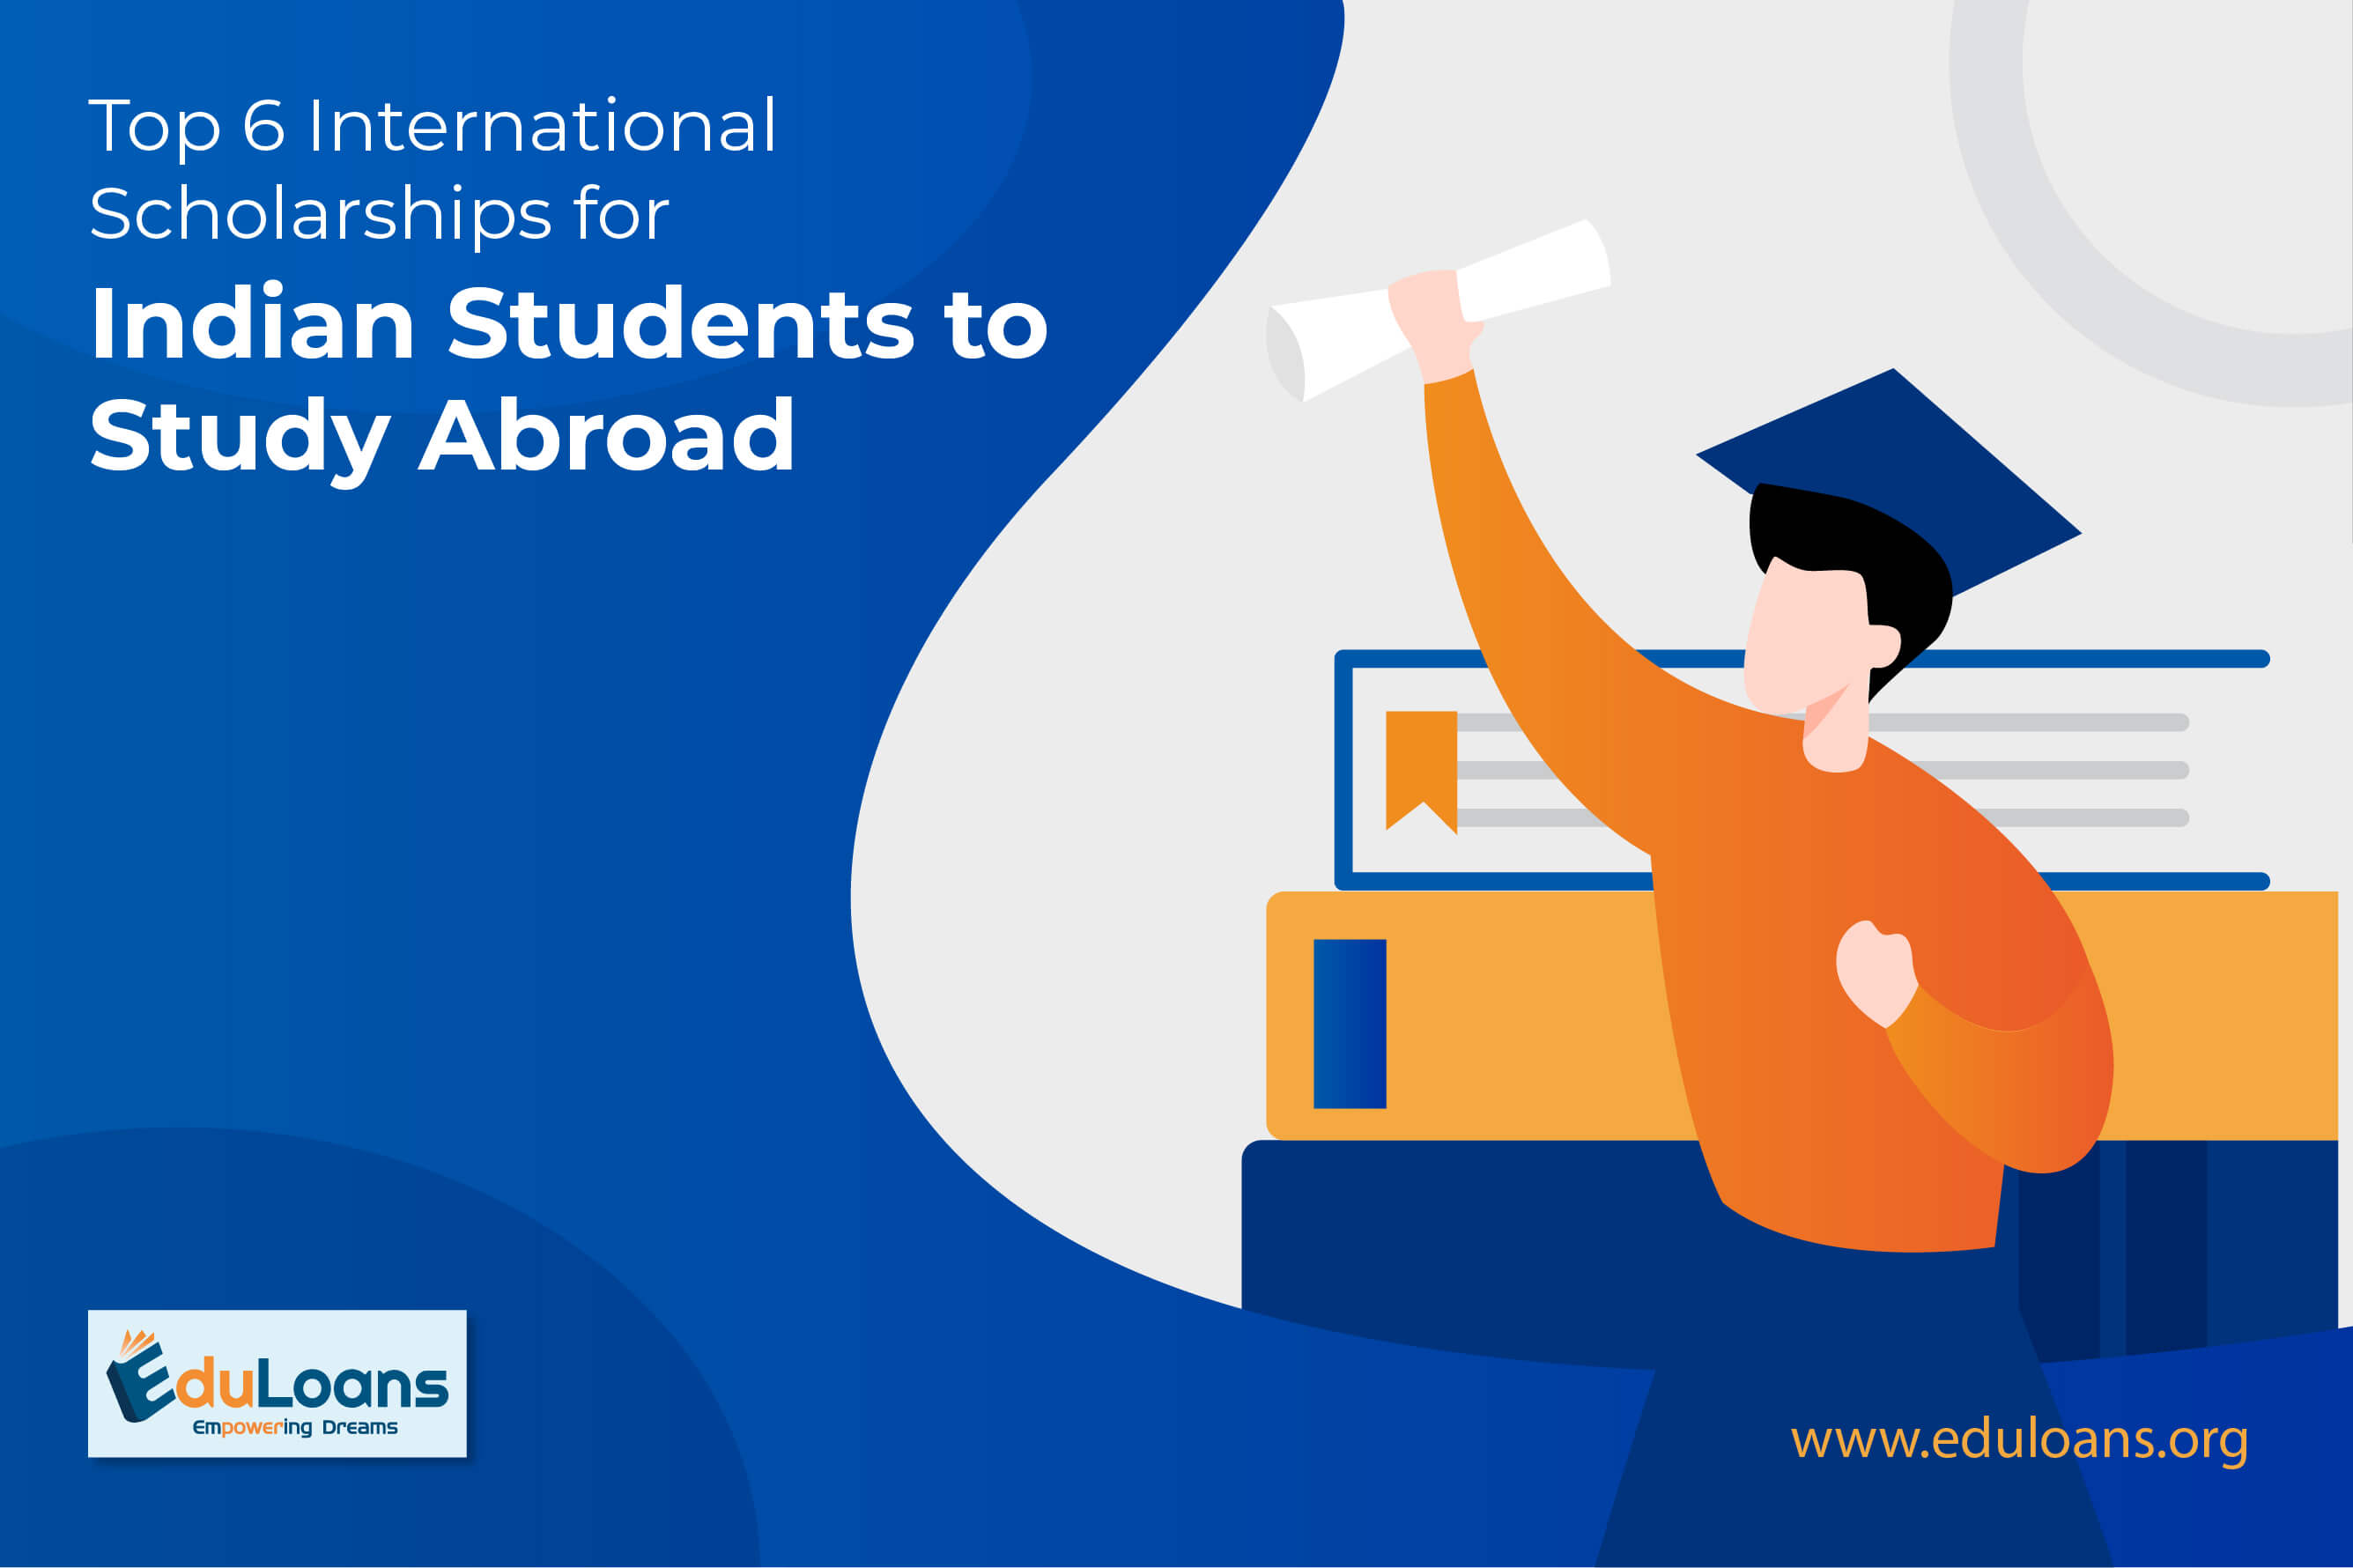 Top 6 International Scholarships for Indian Students to Study Abroad